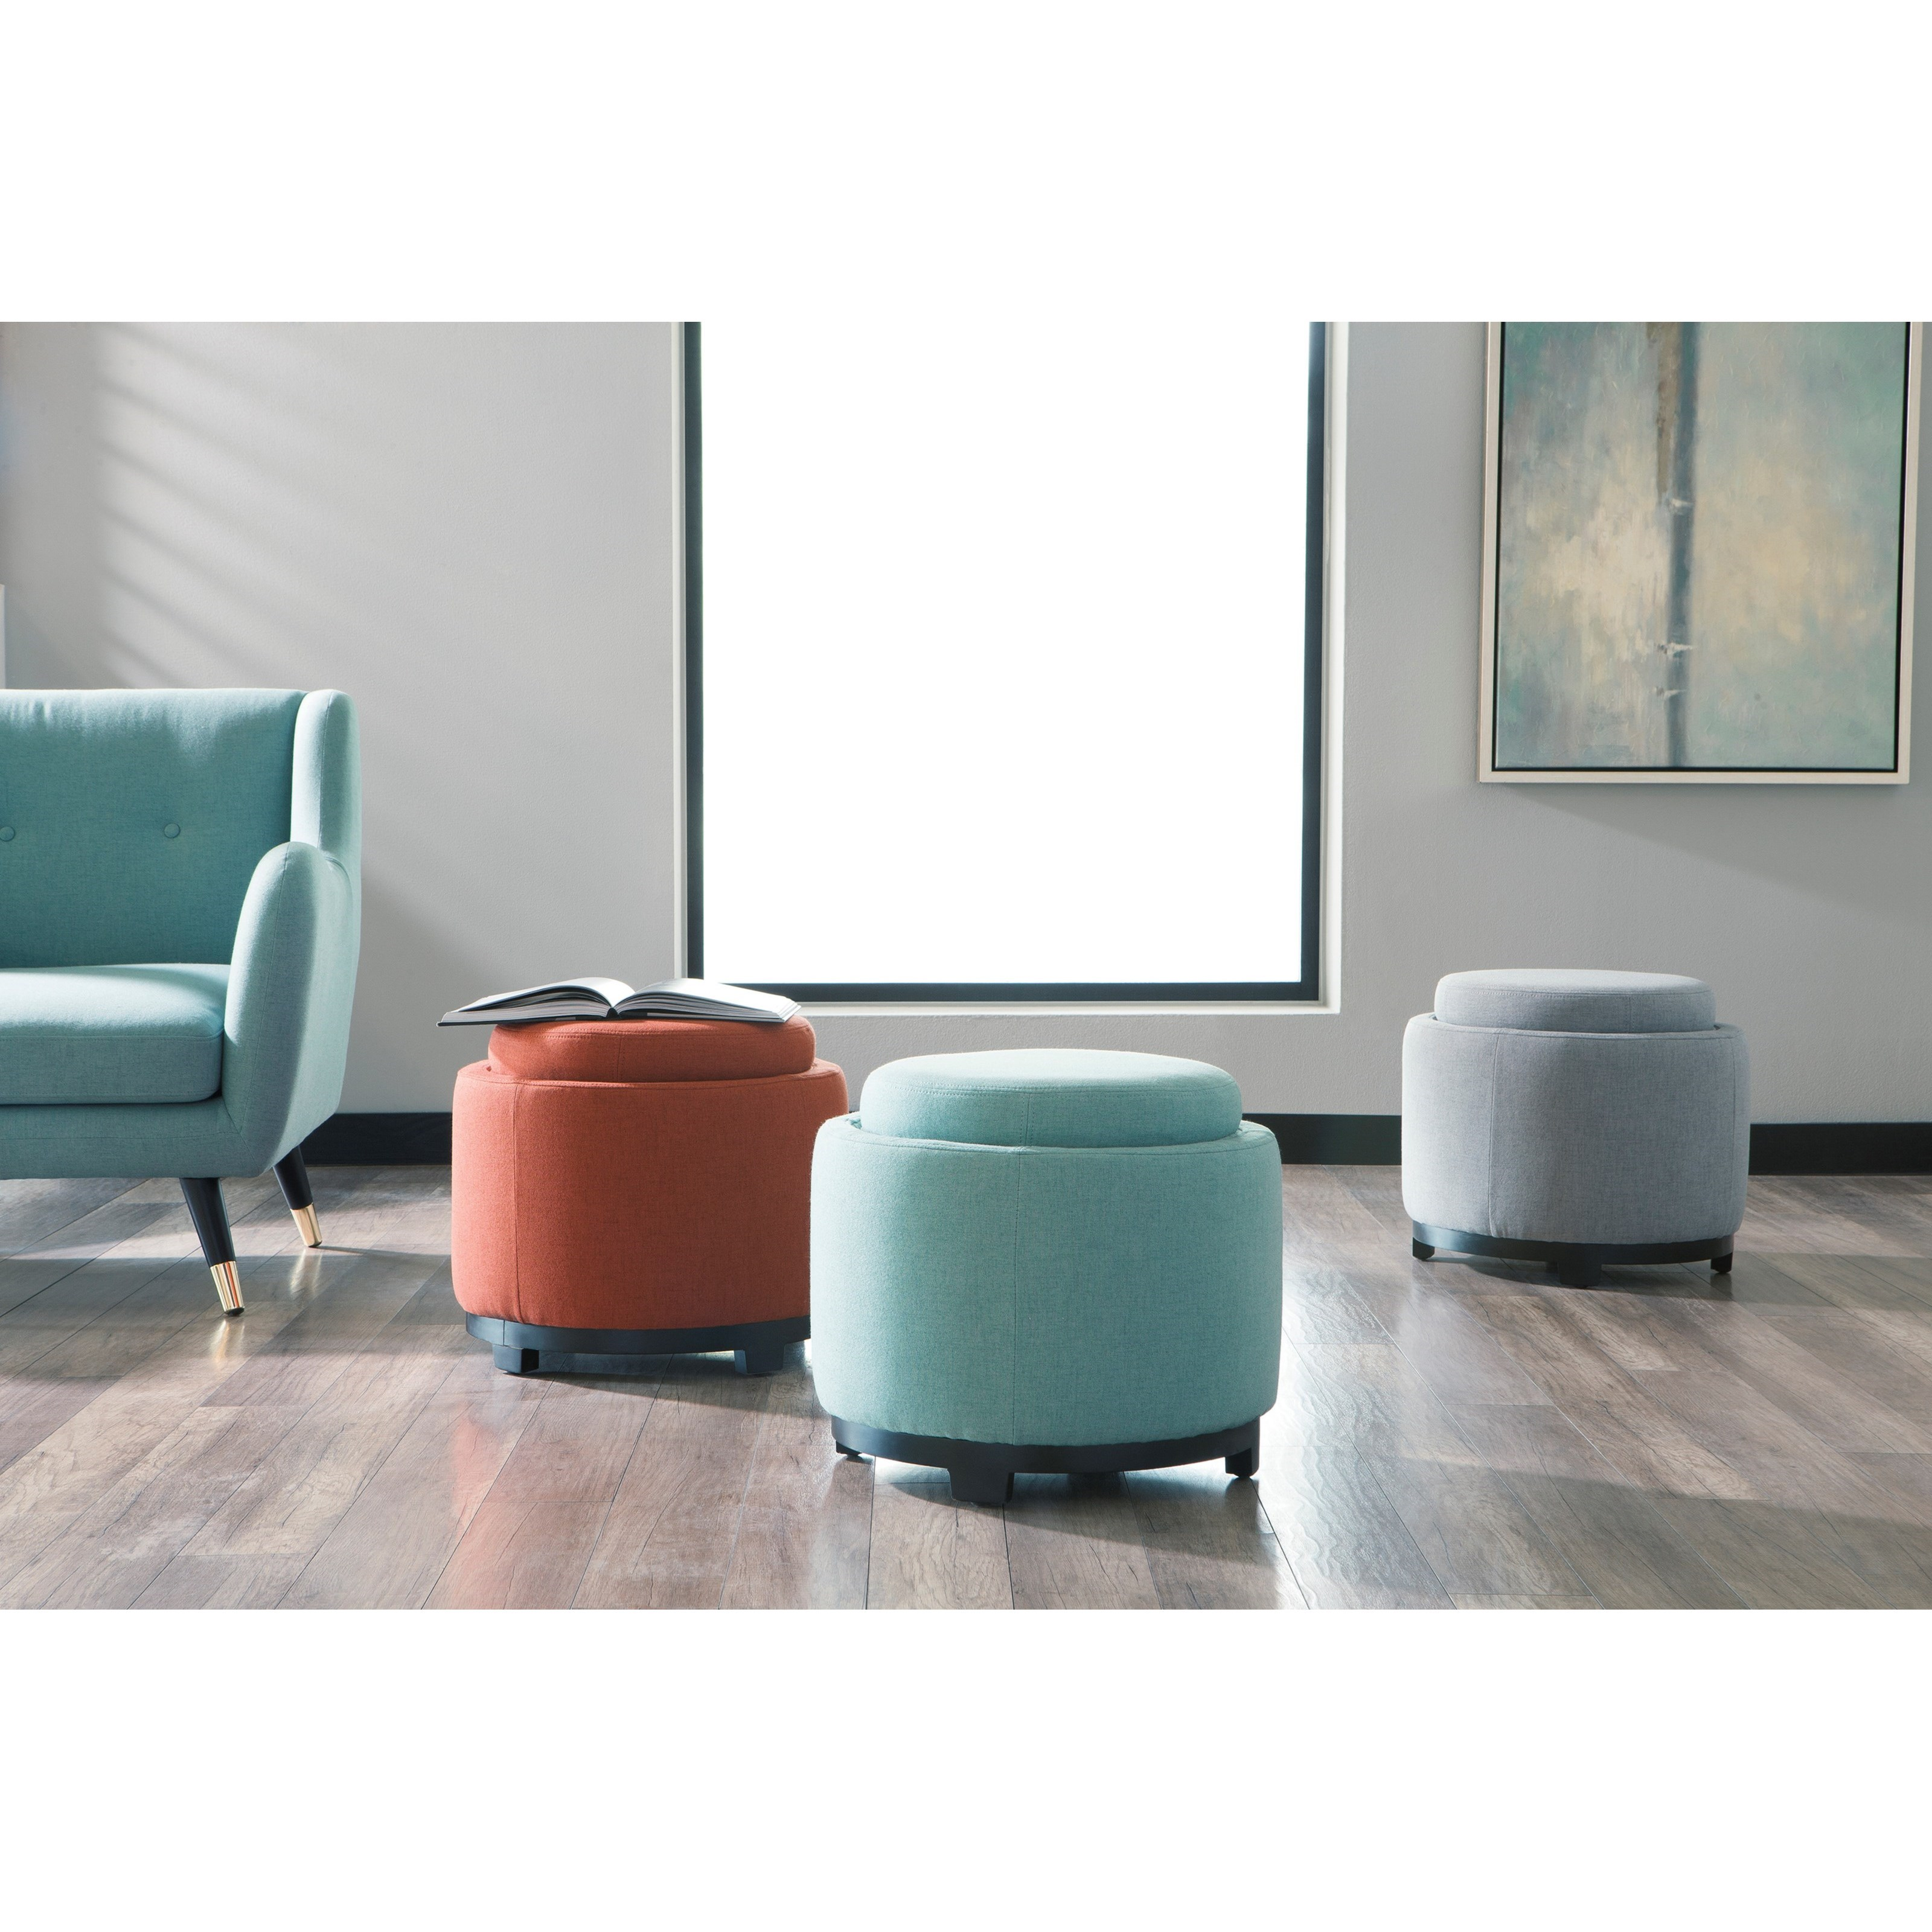 Signature Design By Ashley Menga A3000035 Round Ottoman